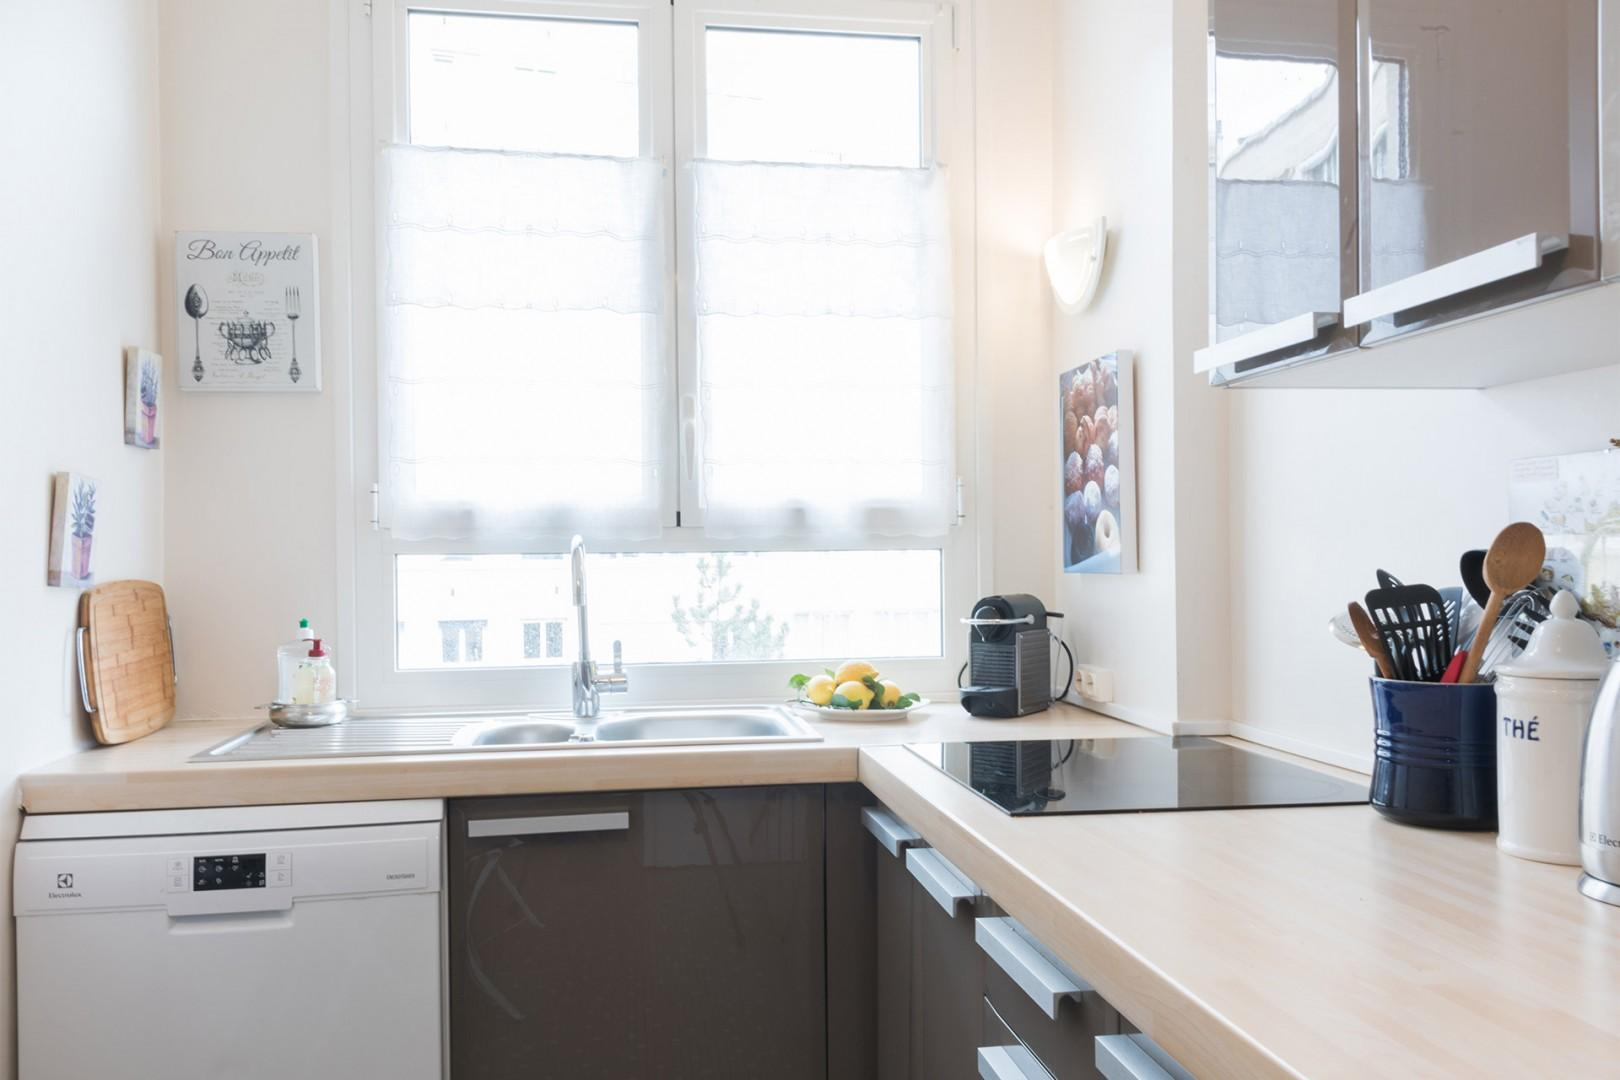 The large window above the sink lets in lots of light.